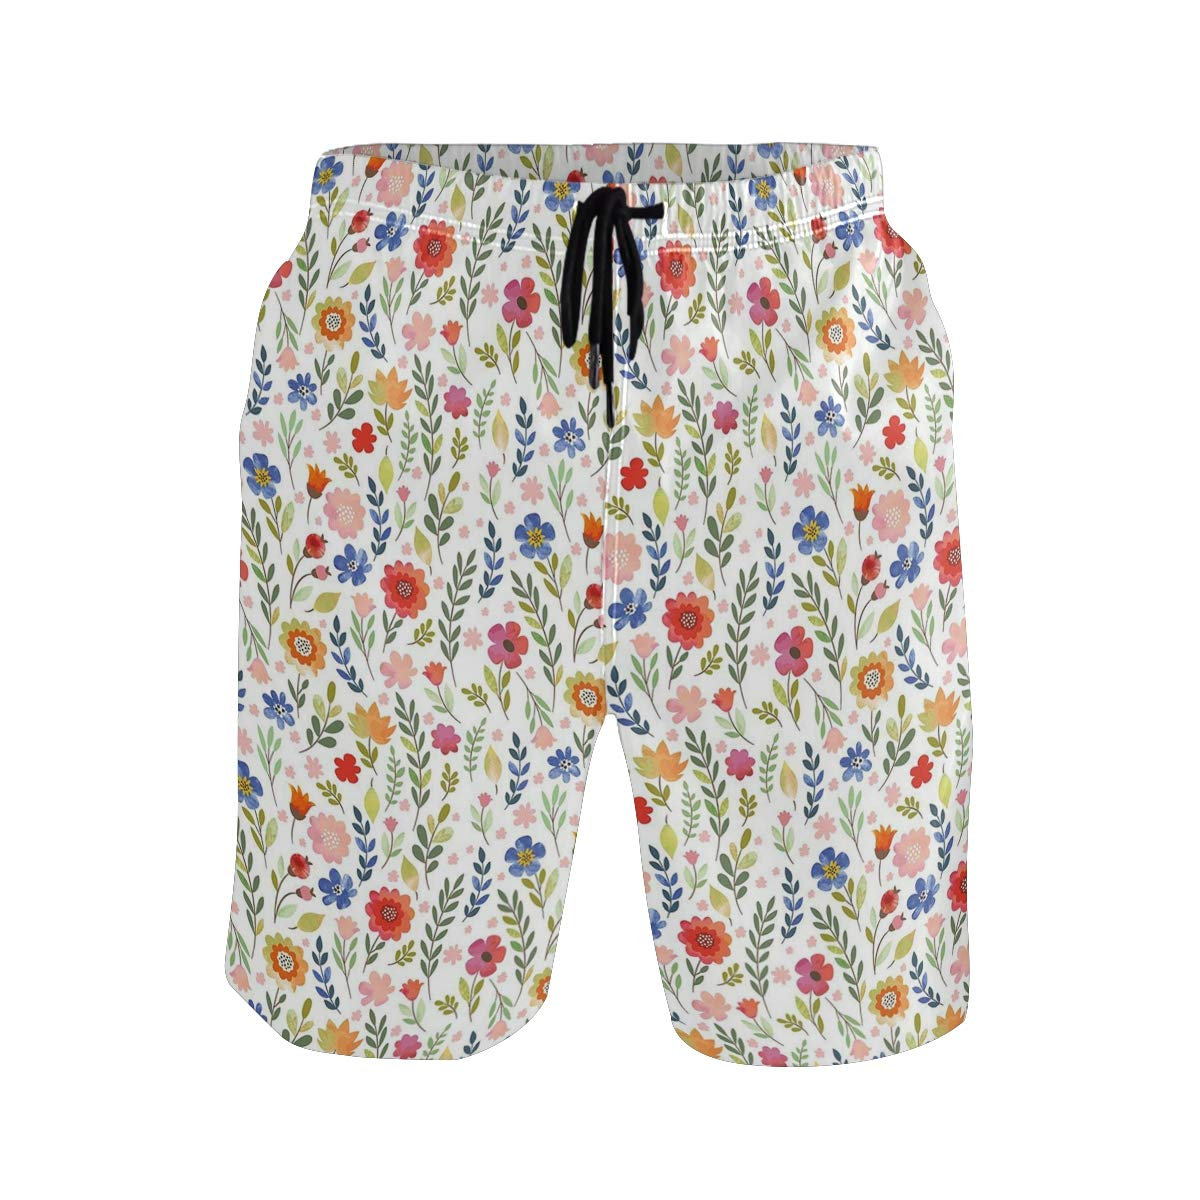 COVASA Mens Summer ShortsFloral Patterned Illustration with Leaves and Wildflo